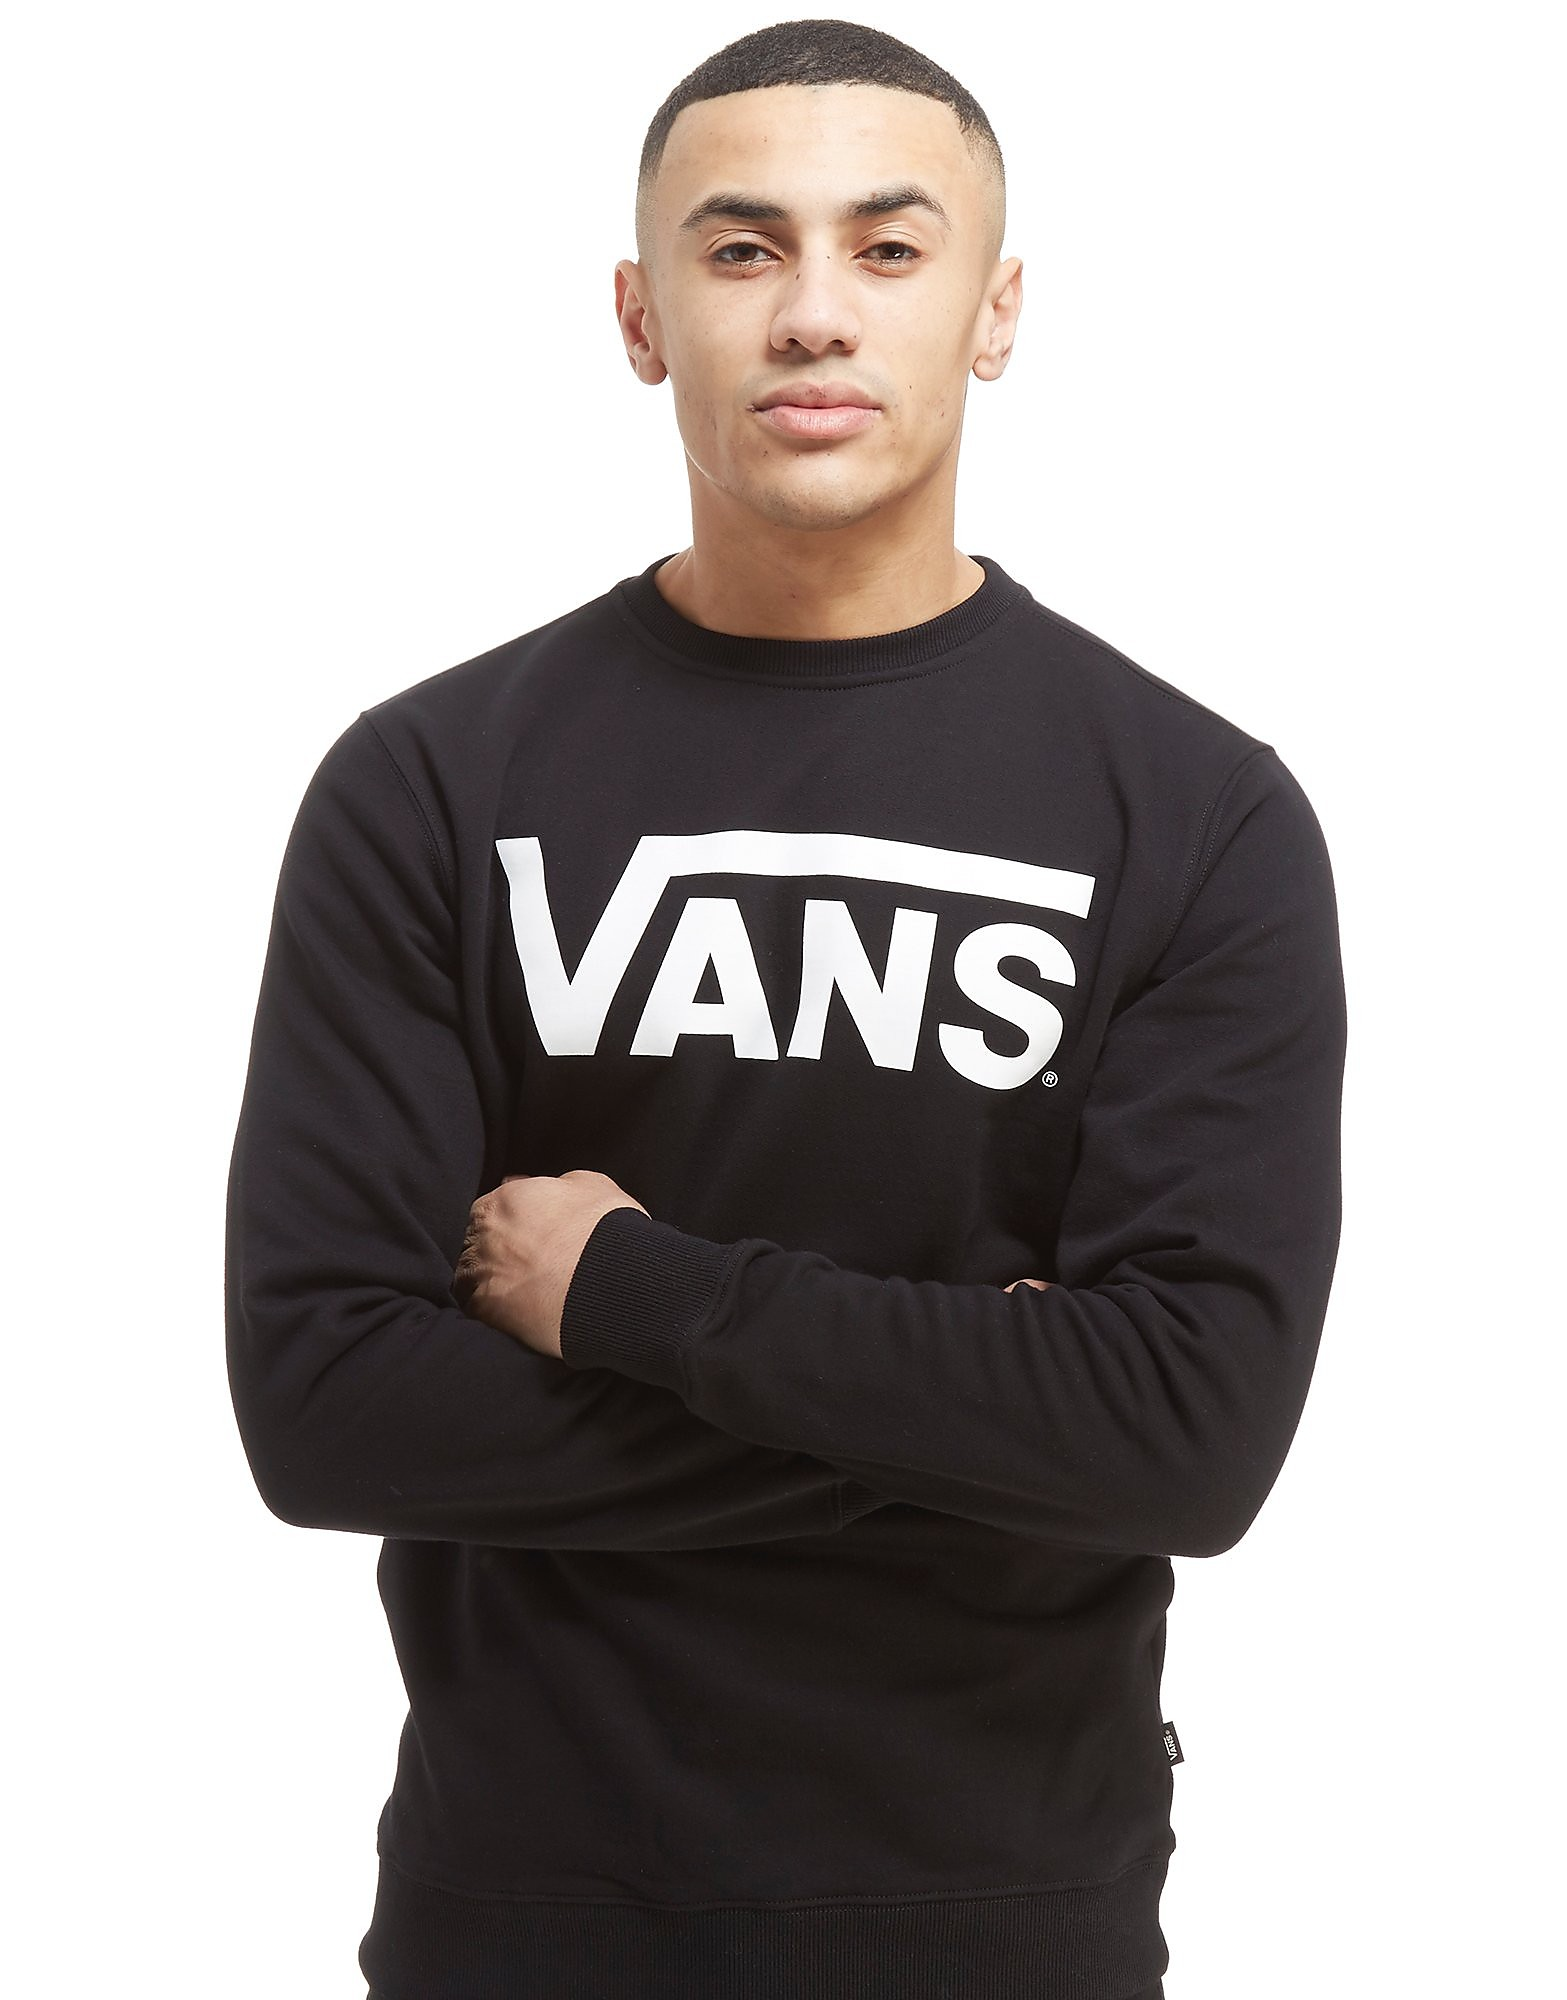 Vans Drop V Crew Sweatshirt